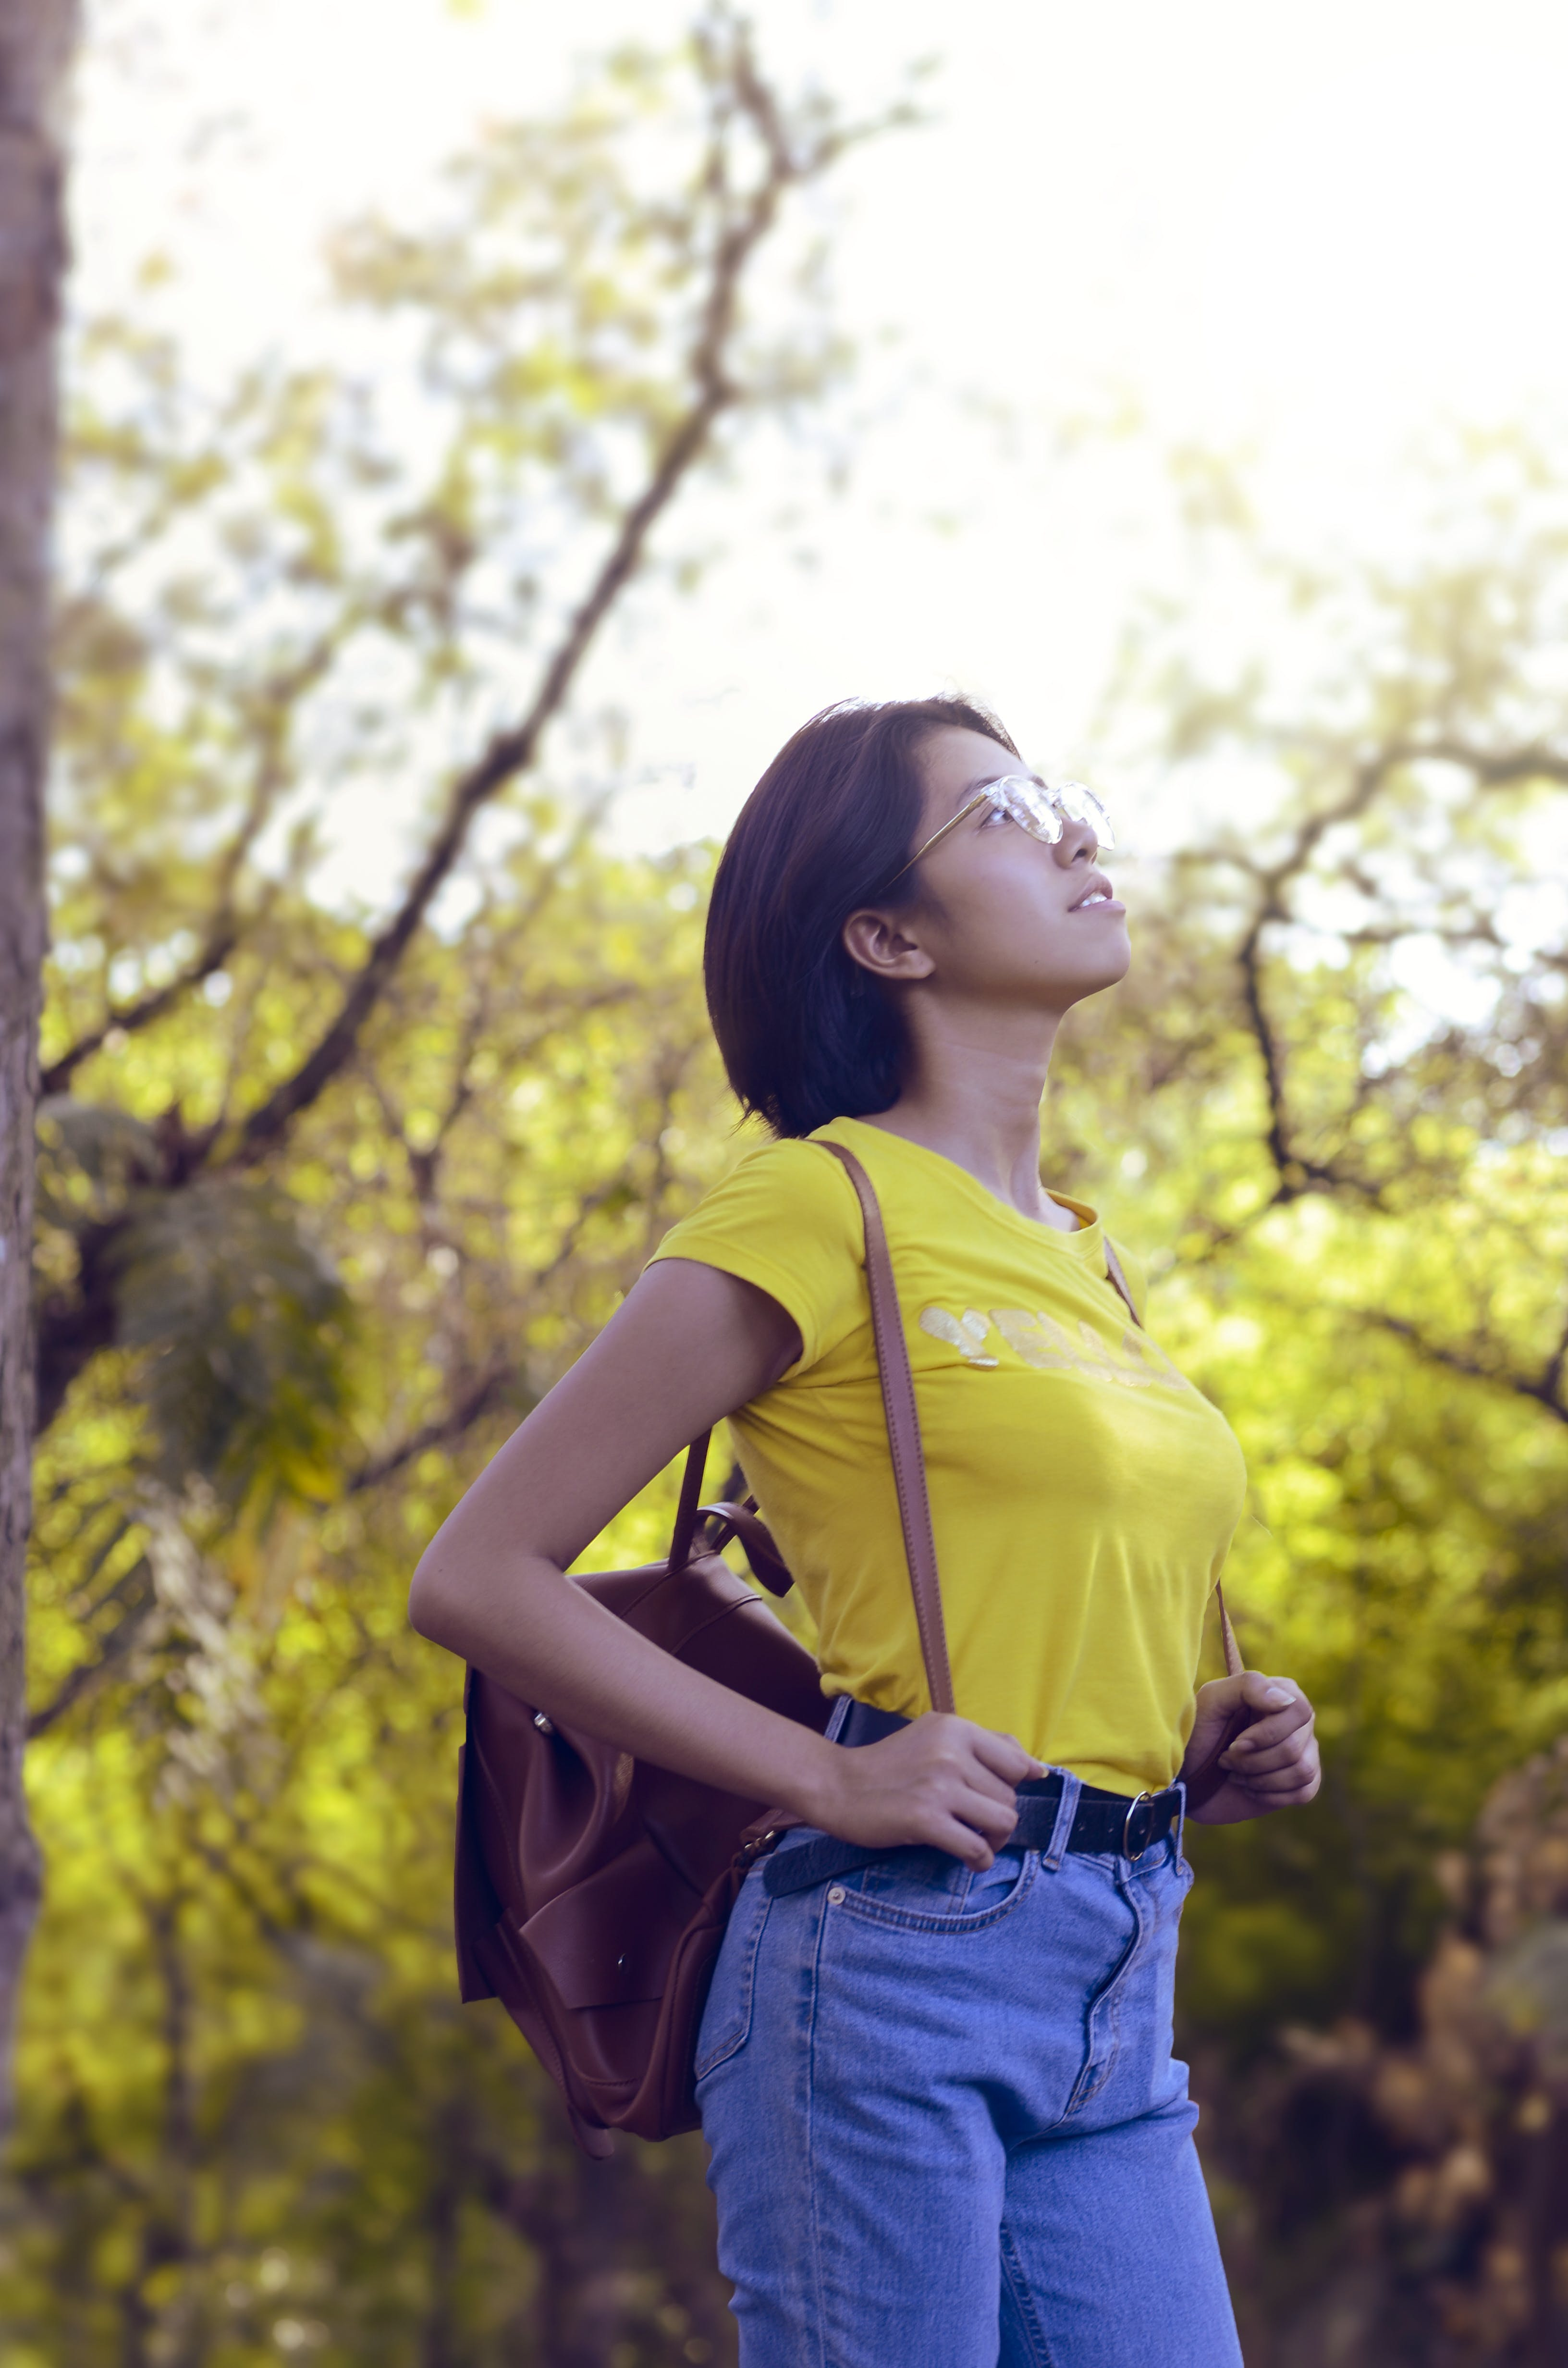 Woman Wearing Yellow Shirt and Looking Up Surrounded by Trees